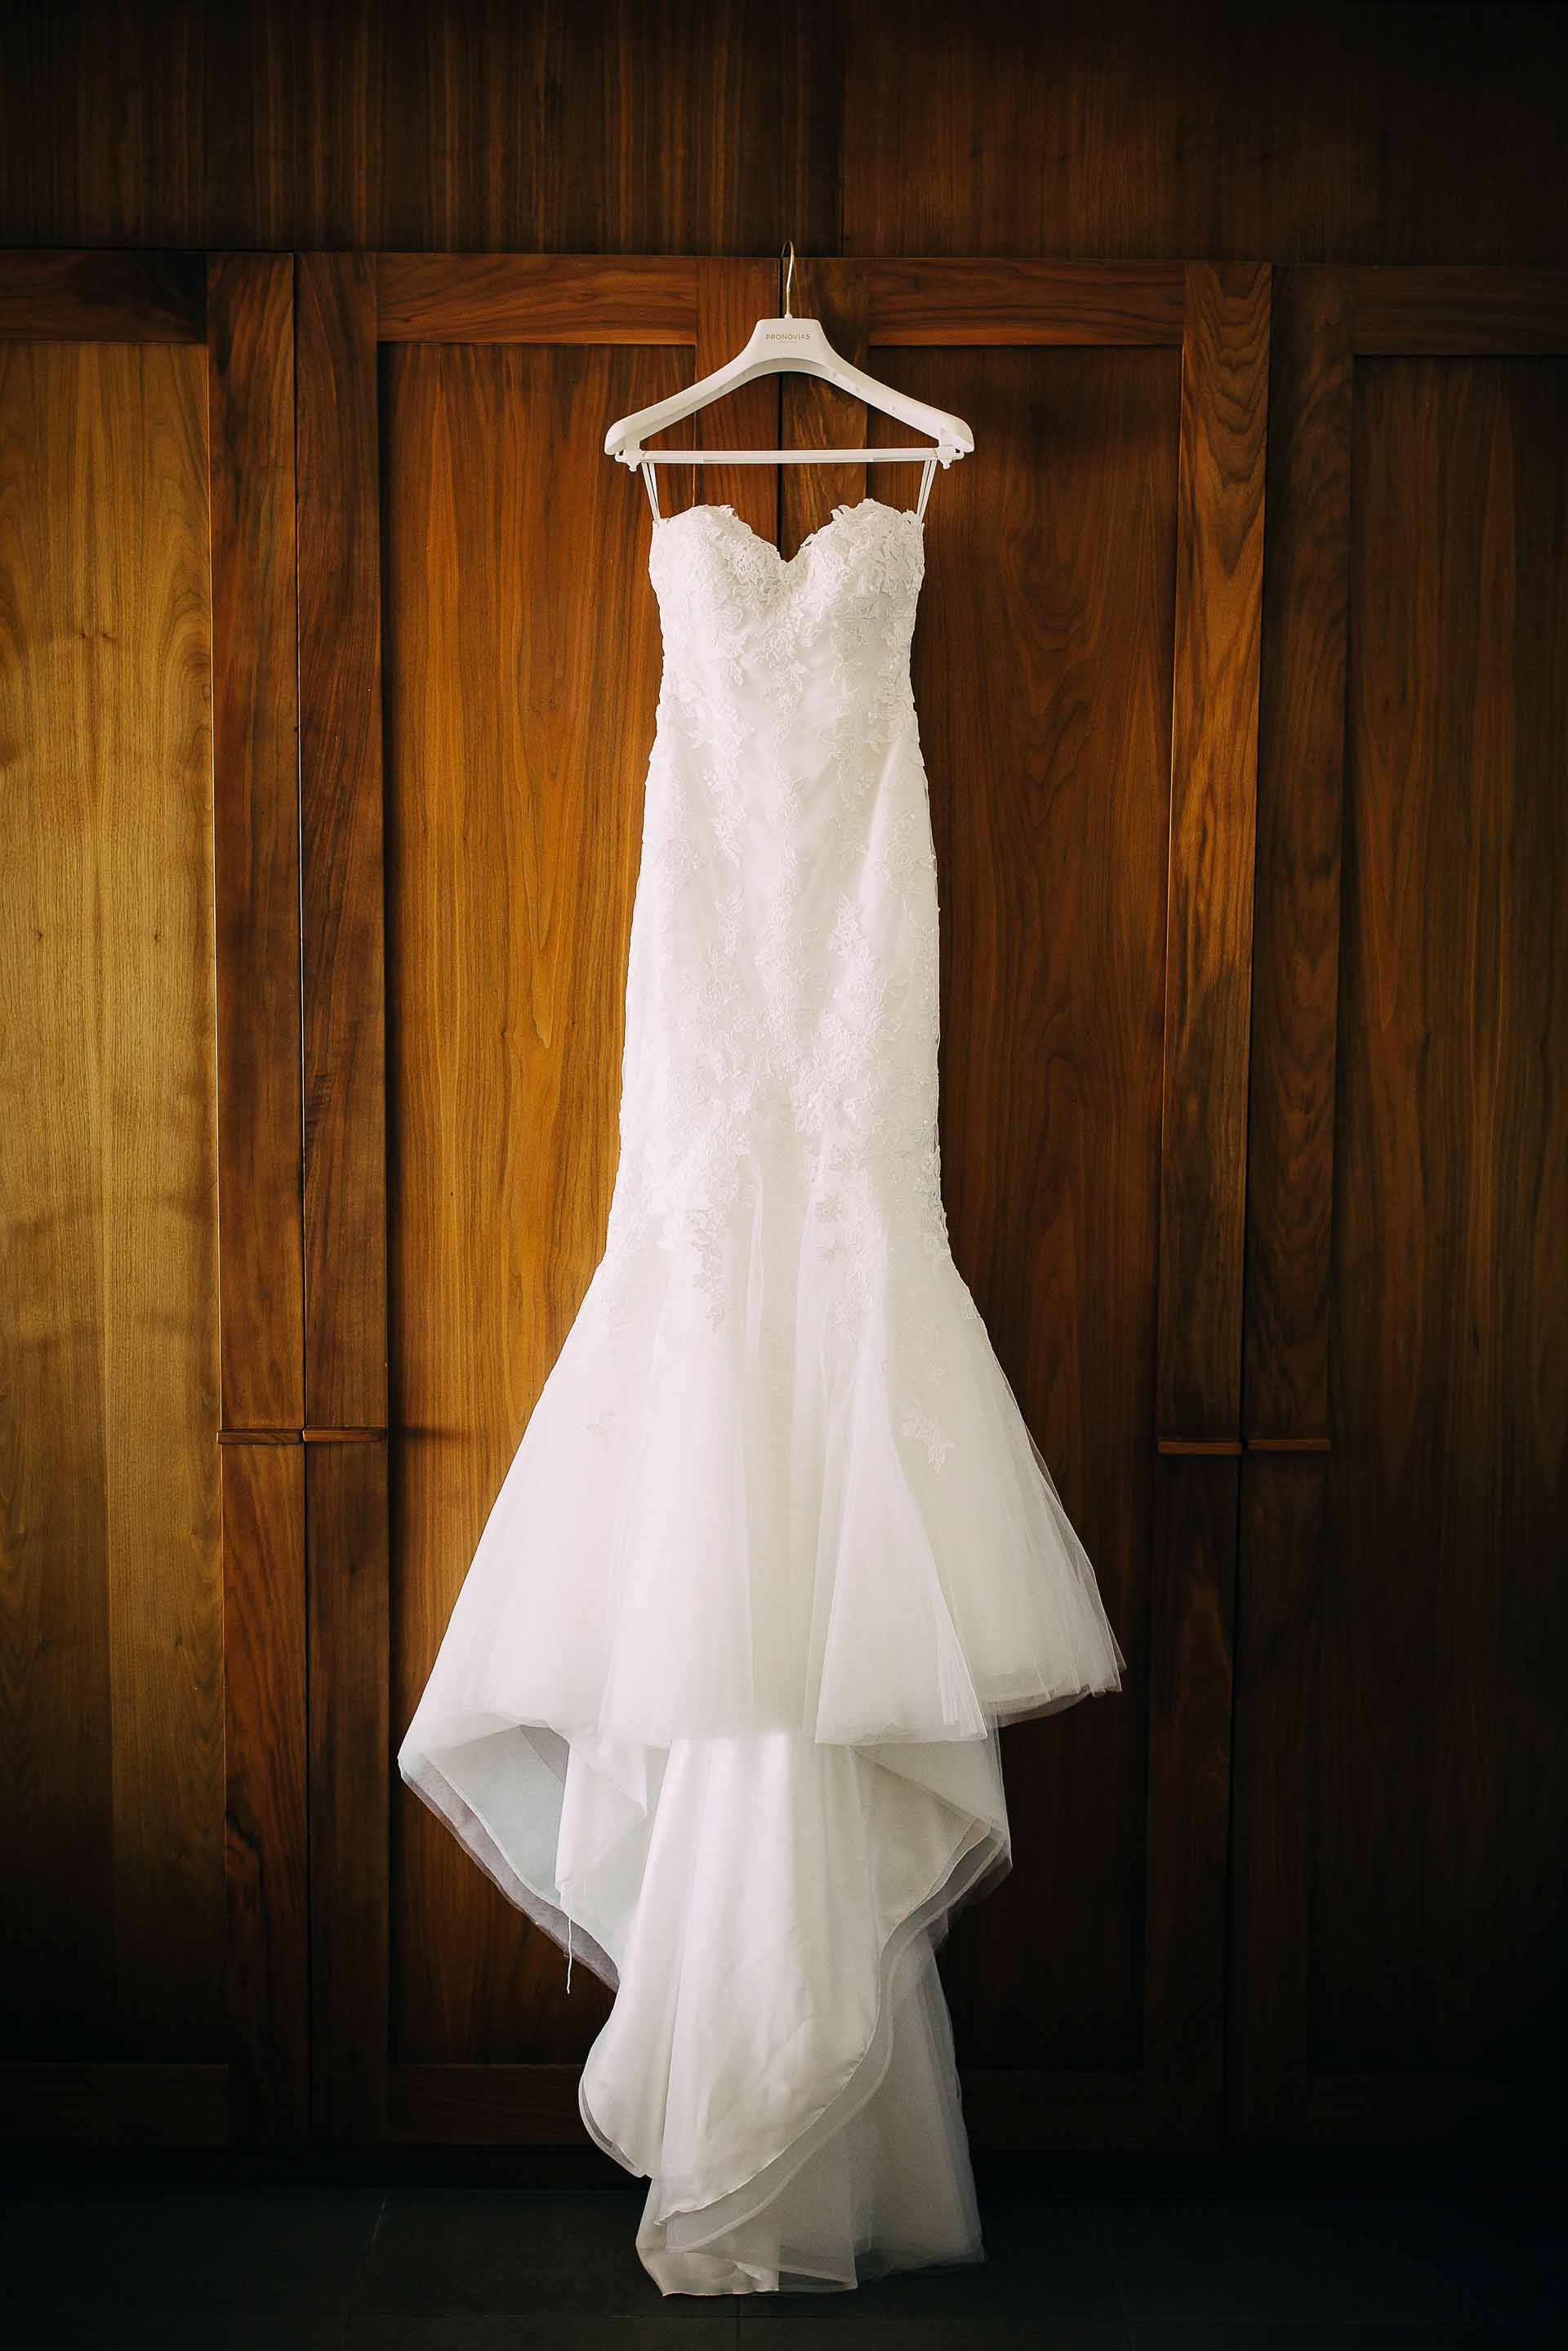 Fiji Bride's wedding dress hangs in her room waiting for the moment to shine.